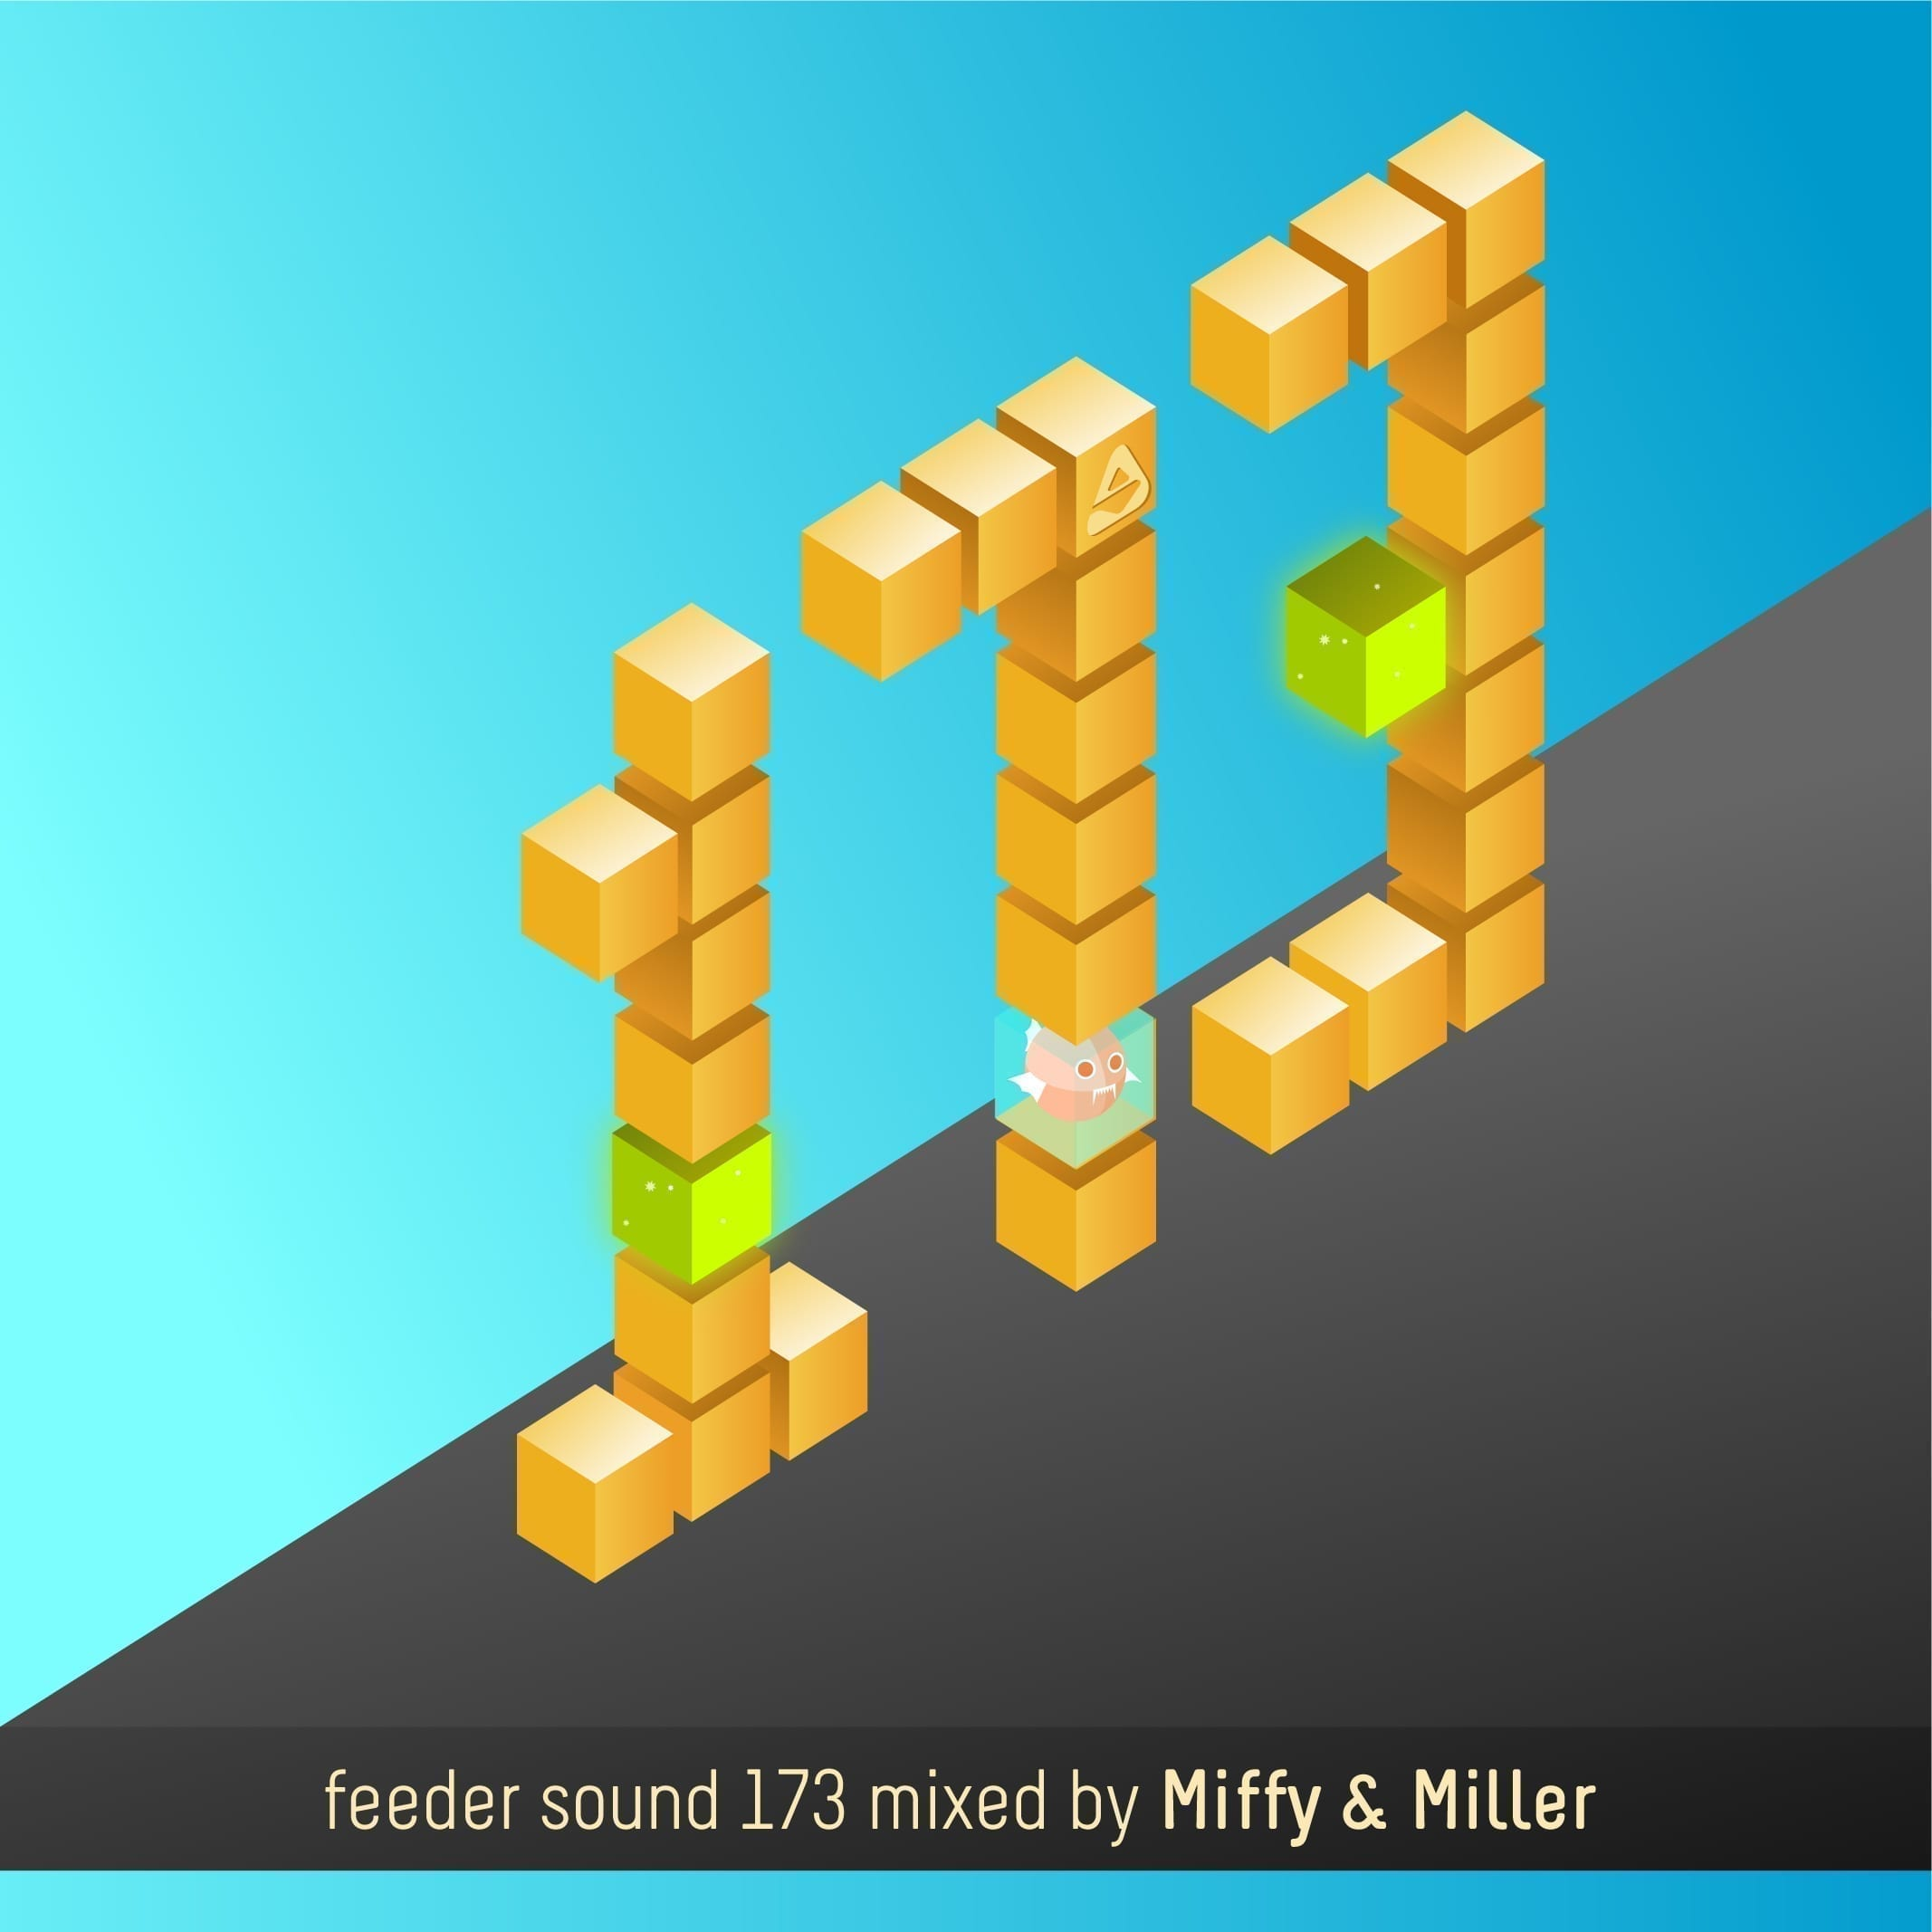 feeder sound 173 mixed by Miffy & Miller